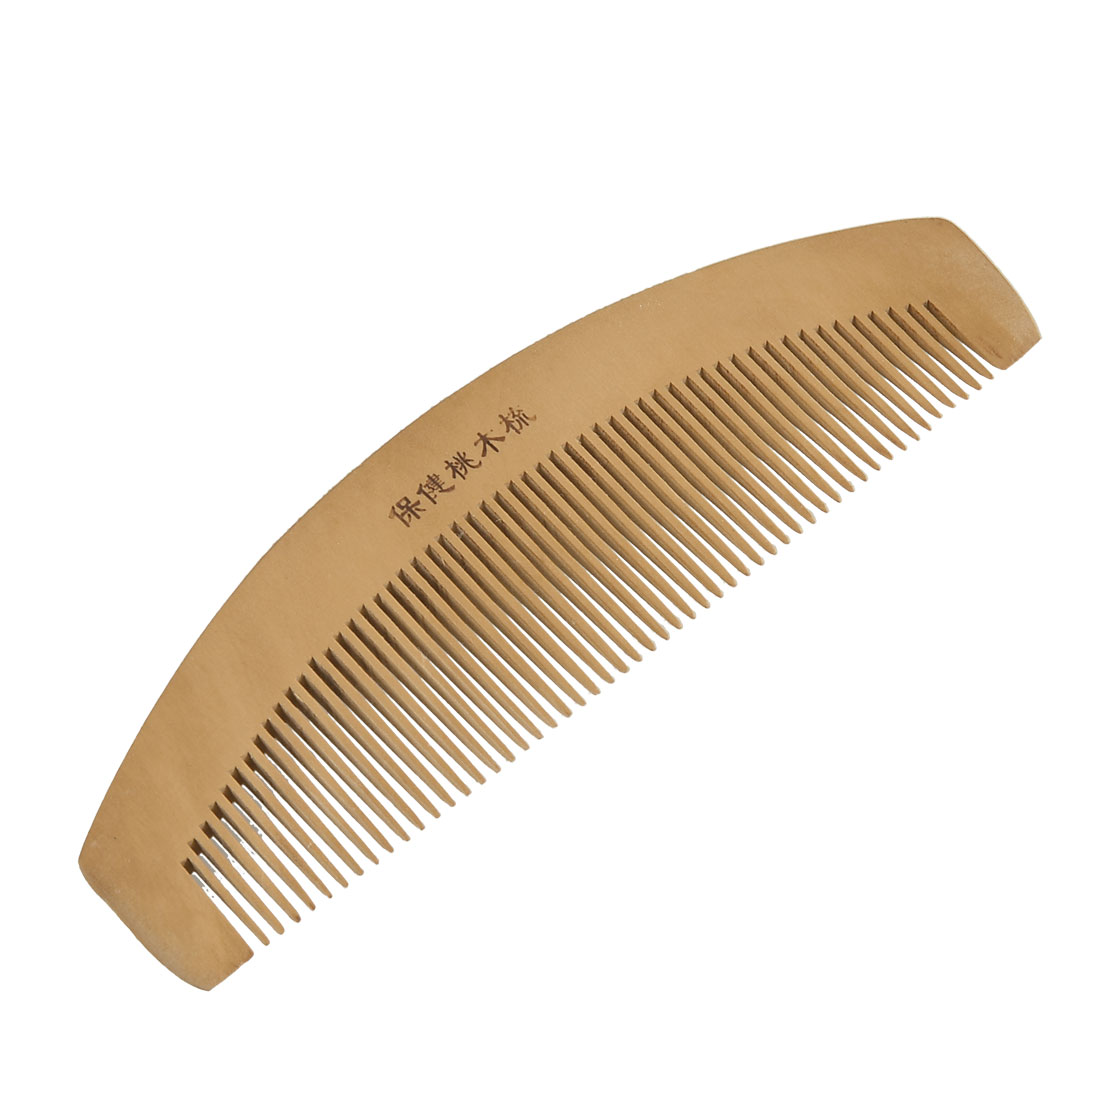 "Women 6.5"" Length Dual Head Wooden Toothed Anti-static Hair Comb"